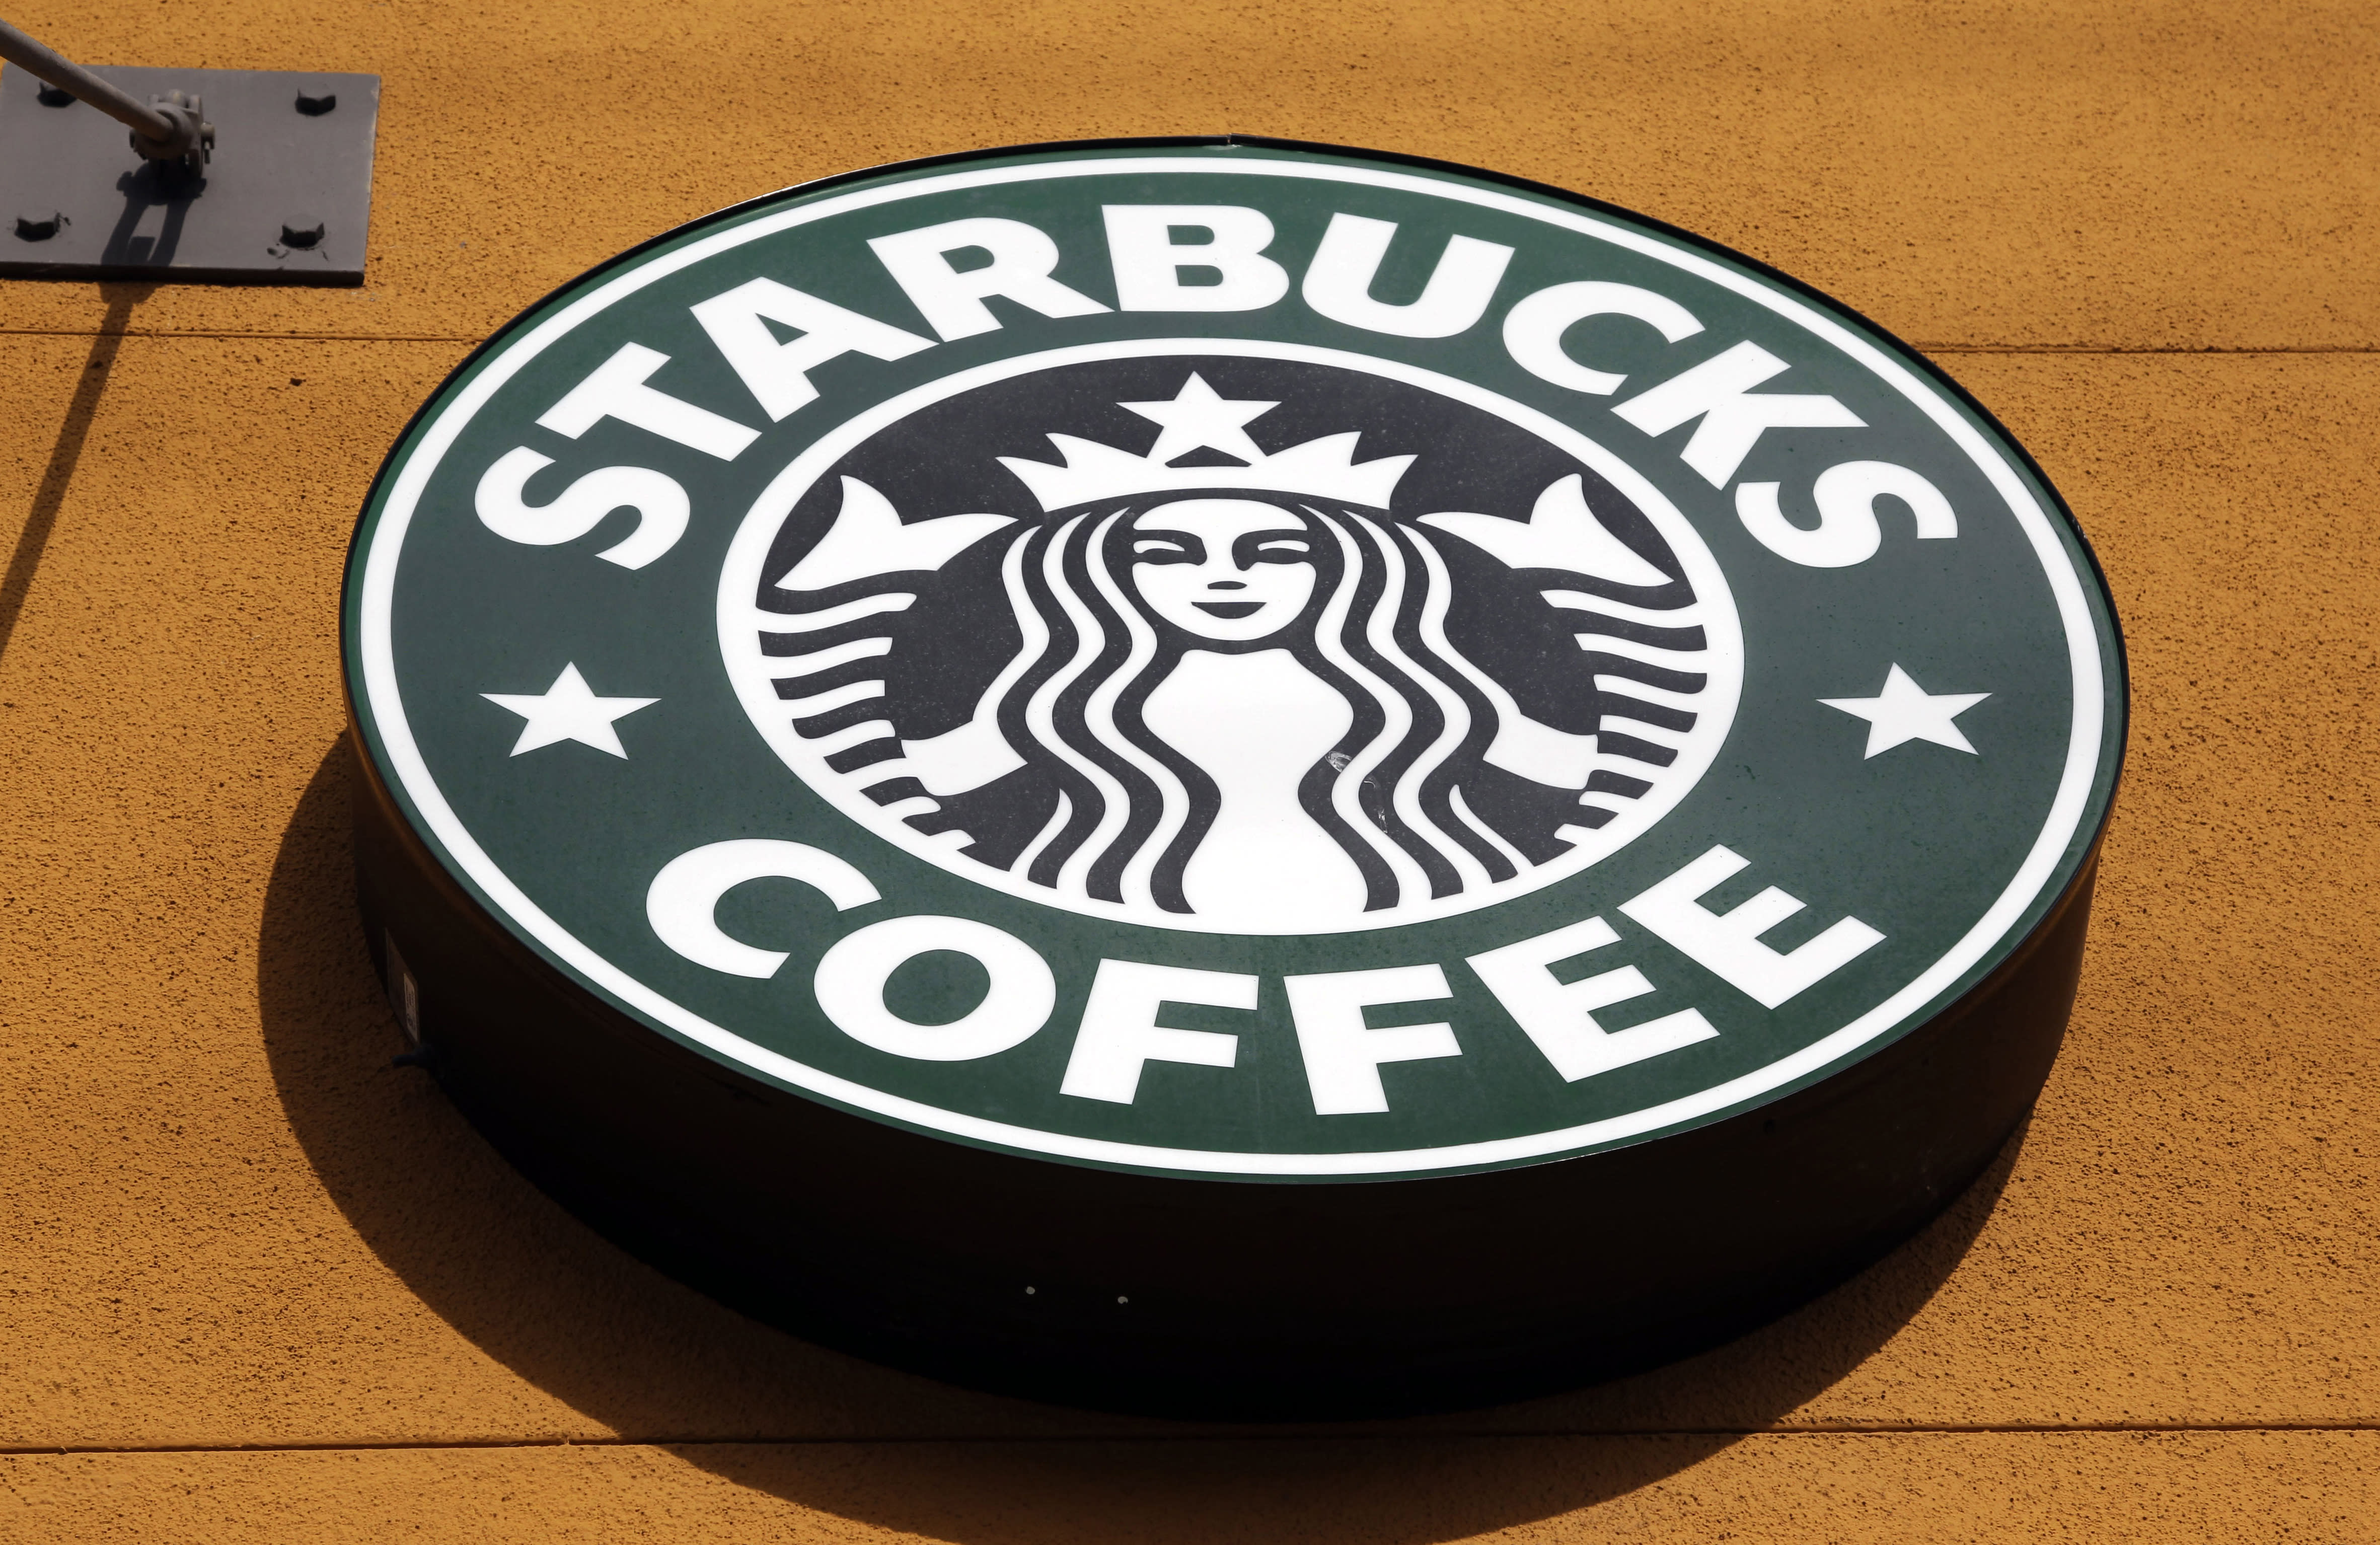 FILE - This Jan. 3, 2012 file photo shows the Starbucks Coffee logo in Mountain View, Calif. A growing number of U.S. companies are pledging to give workers time off to vote in the presidential election this November, an effort that's gaining steam despite the government's reluctance to make Election Day a federal holiday. Starbucks said Thursday it will give its 200,000 U.S. employees flexibility on Election Day, encouraging them to plan ahead with managers and schedule time to vote or volunteer at polling places. (AP Photo/Paul Sakuma, File)